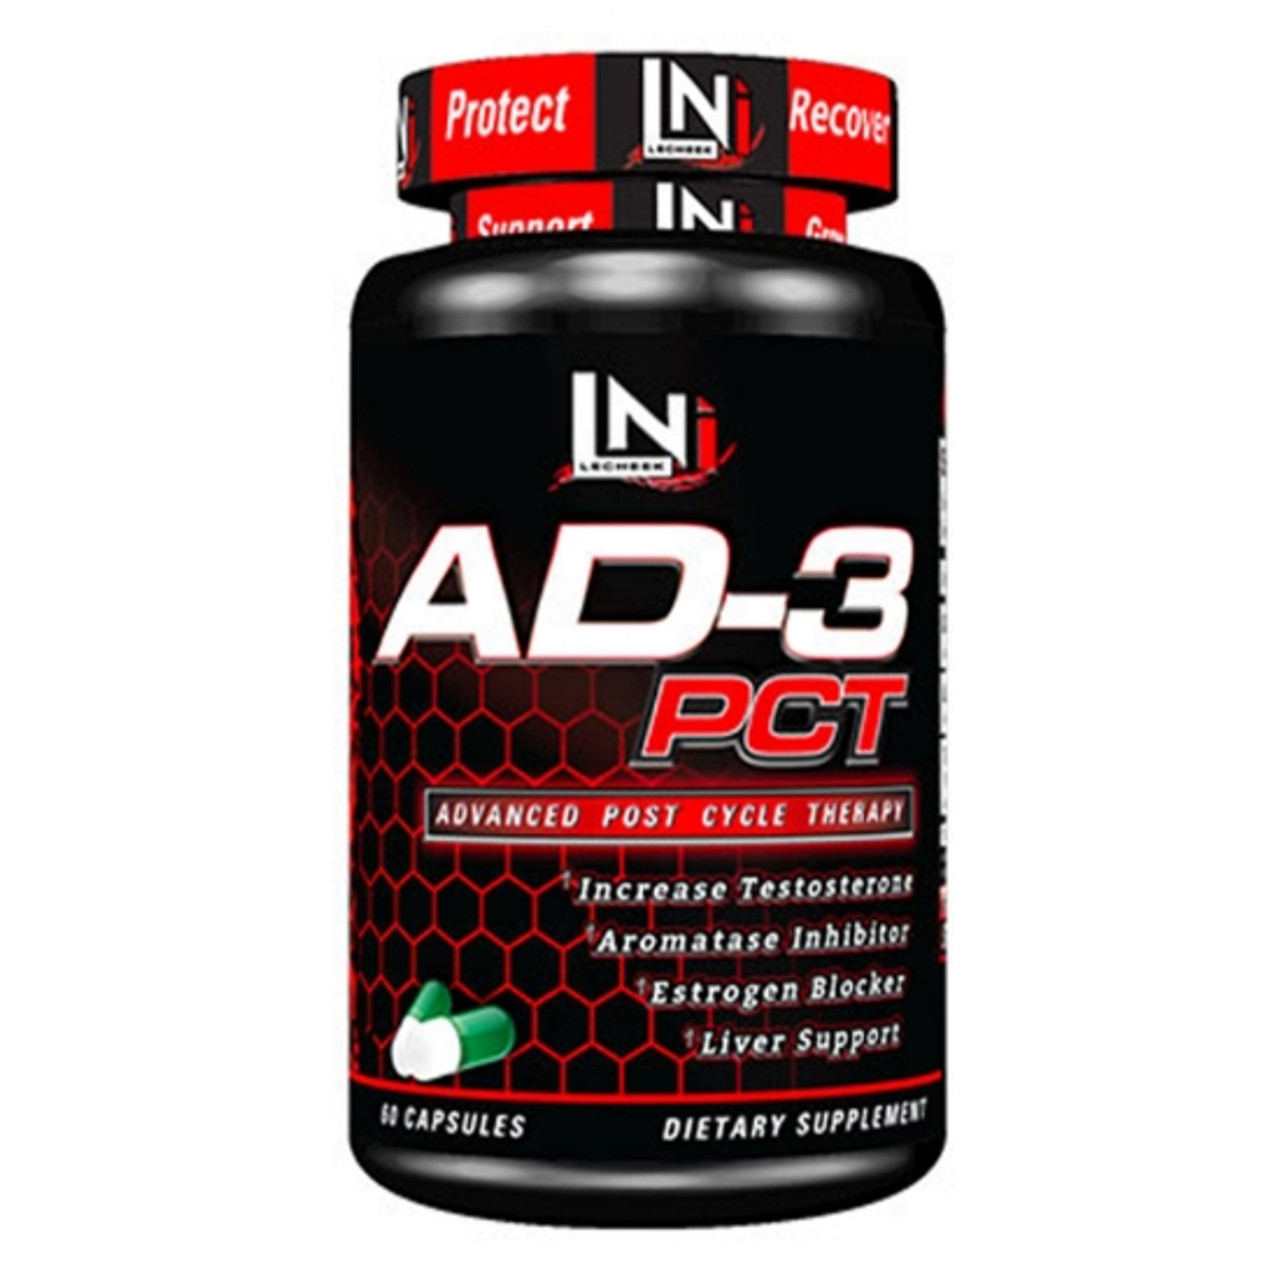 Androsta 3 5 Diene 7 17 Dione Side Effects lecheek nutrition ad-3 pct